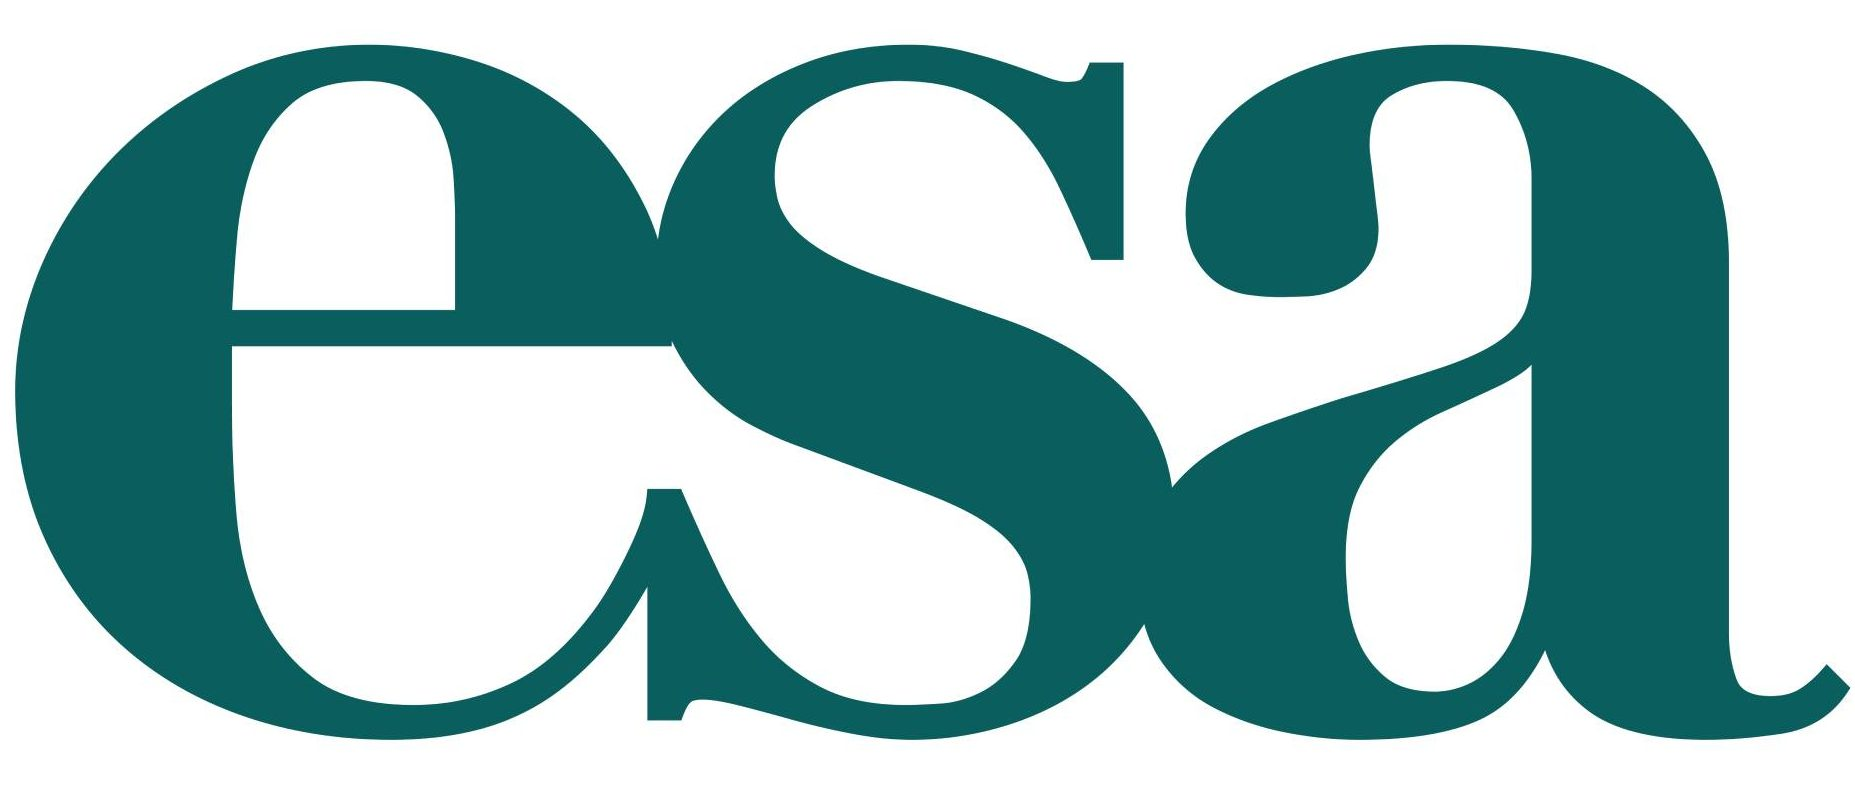 Logo of the Ecological Society of America